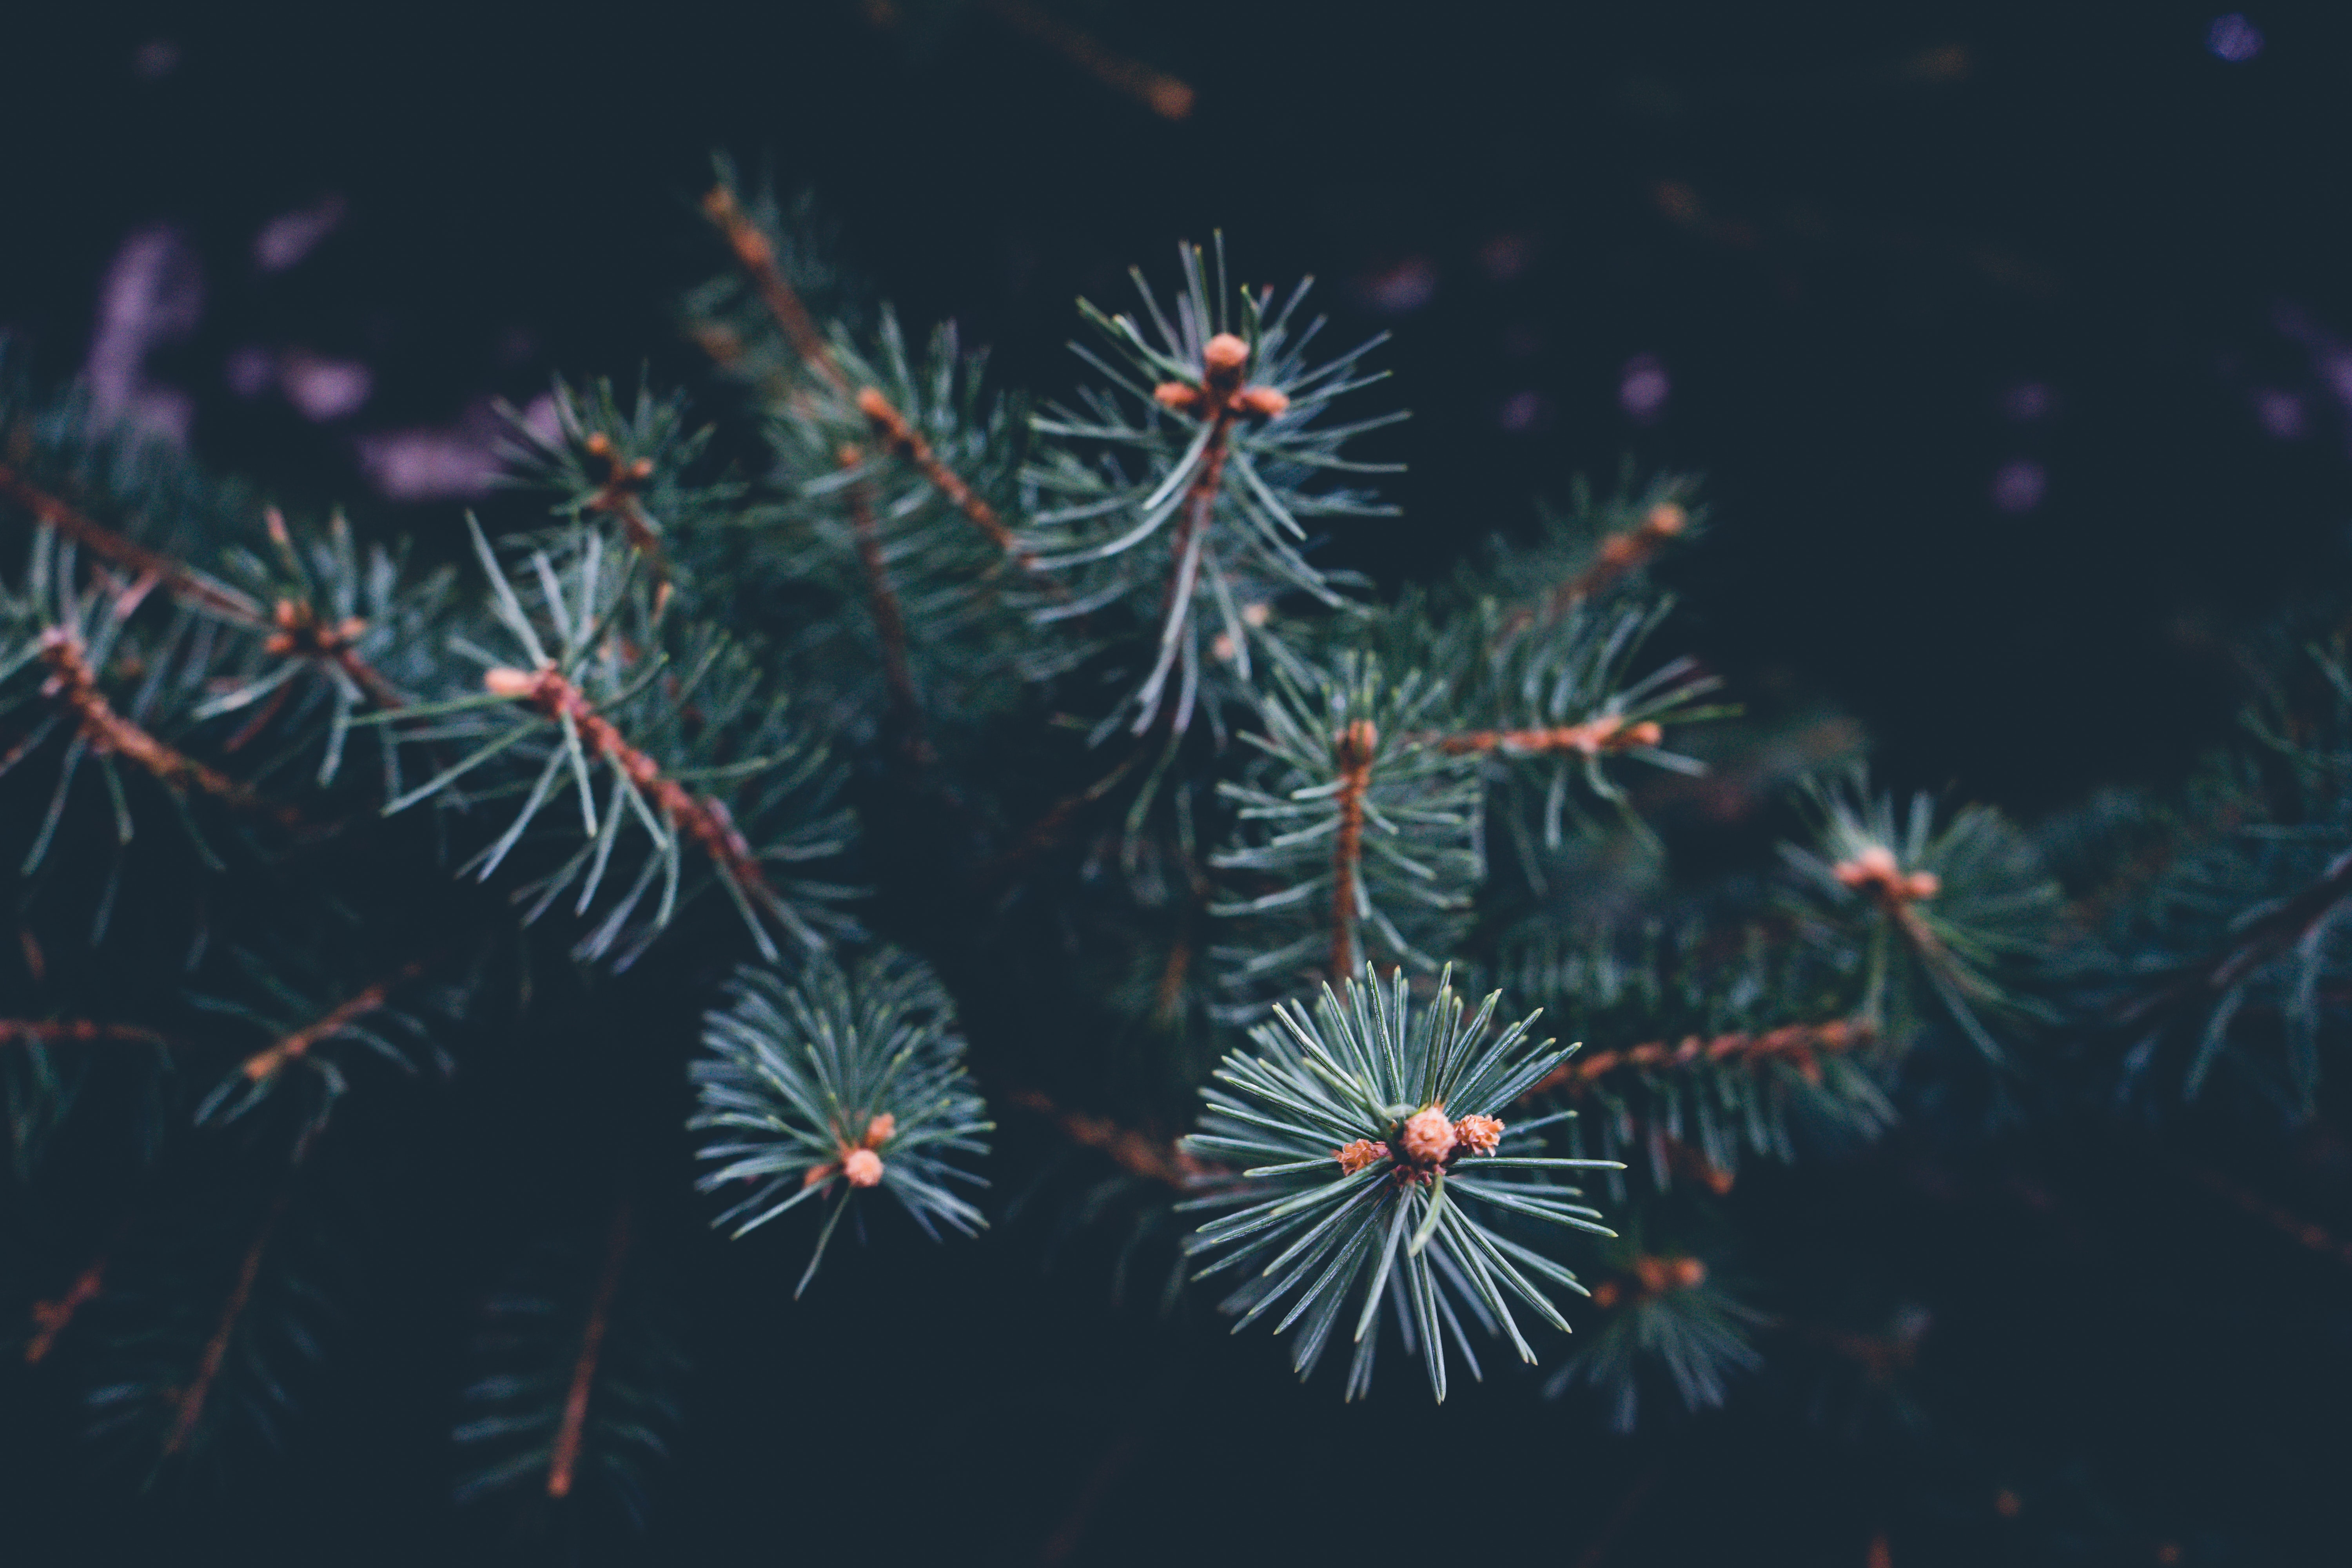 green pine tree closeup photography